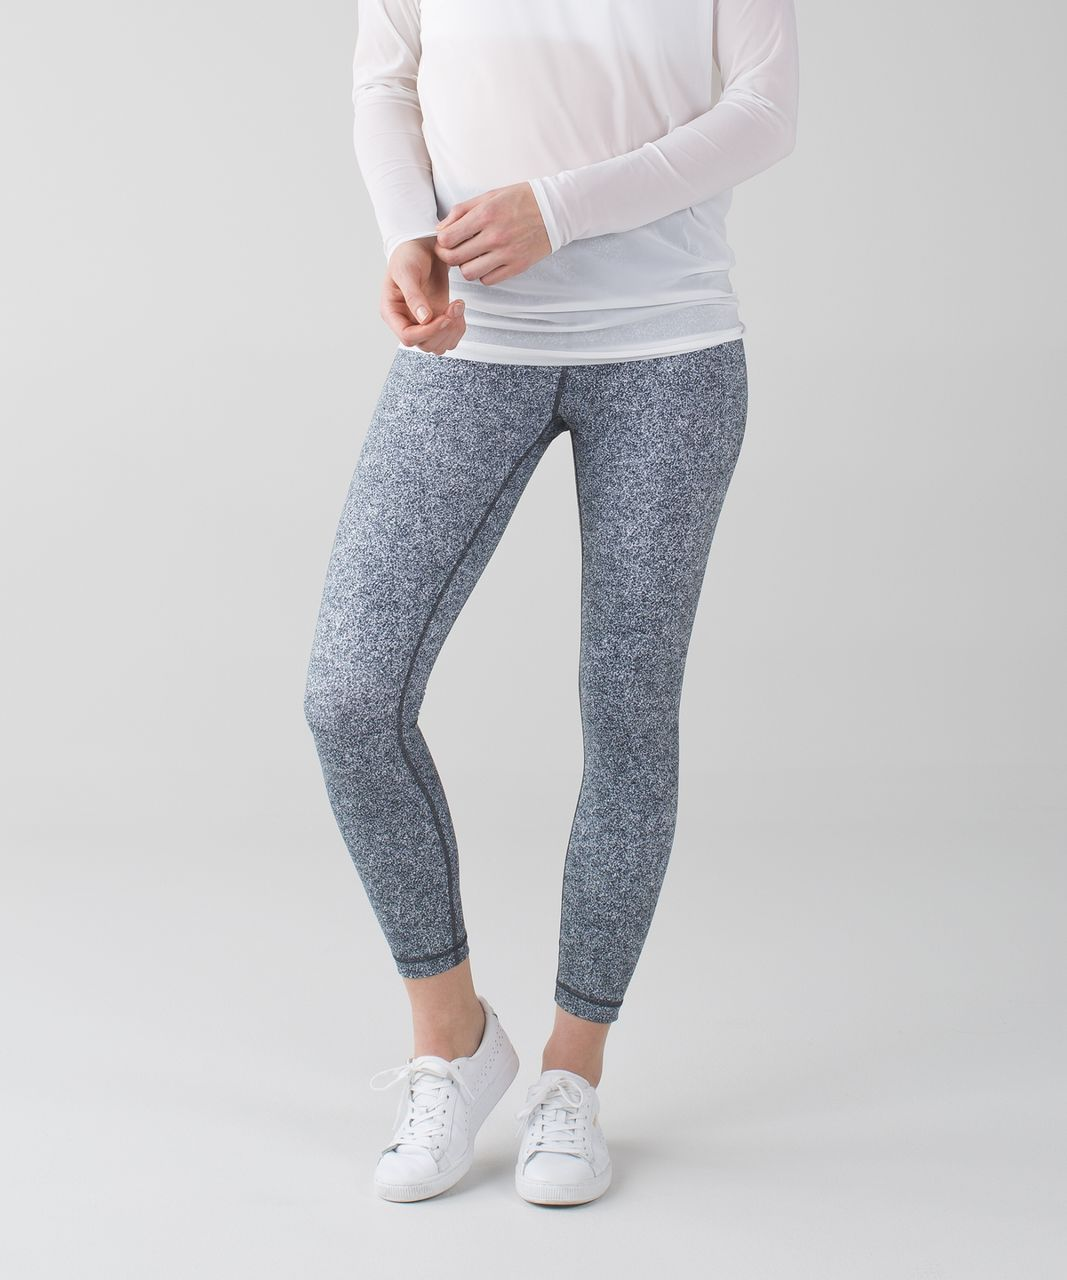 Lululemon High Times Pant - Rio Mist White Black